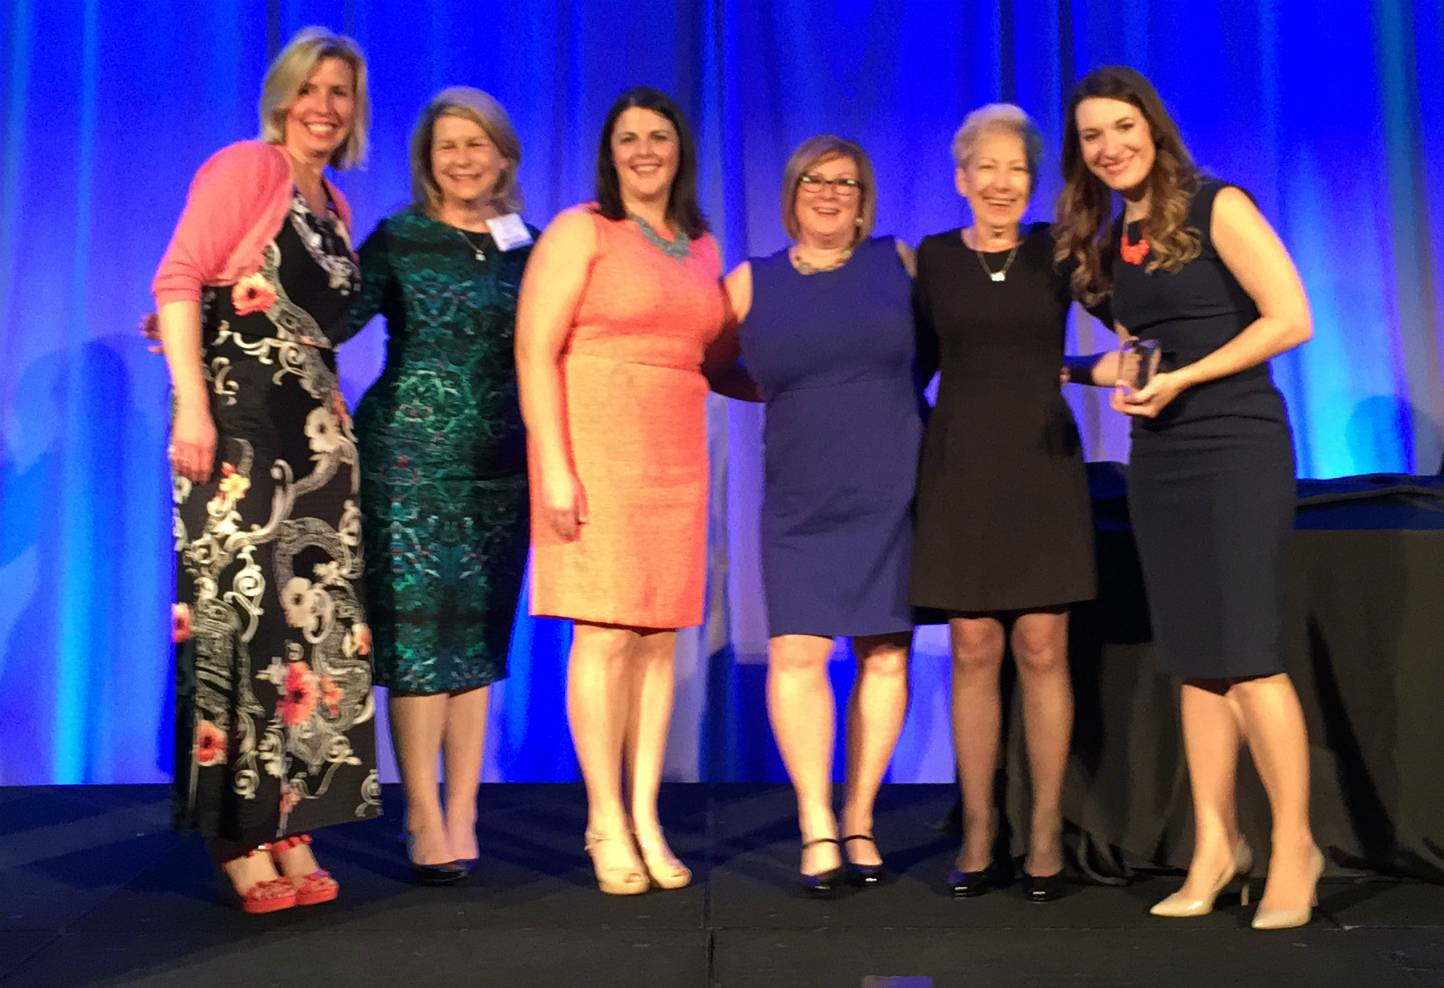 From left to right: Executive director Renee Garvin, marketing director Nancy Arnold, and marketing team members Michele Hilger, Kristin Drees, Mary Walsh and Kimberly Giudice.